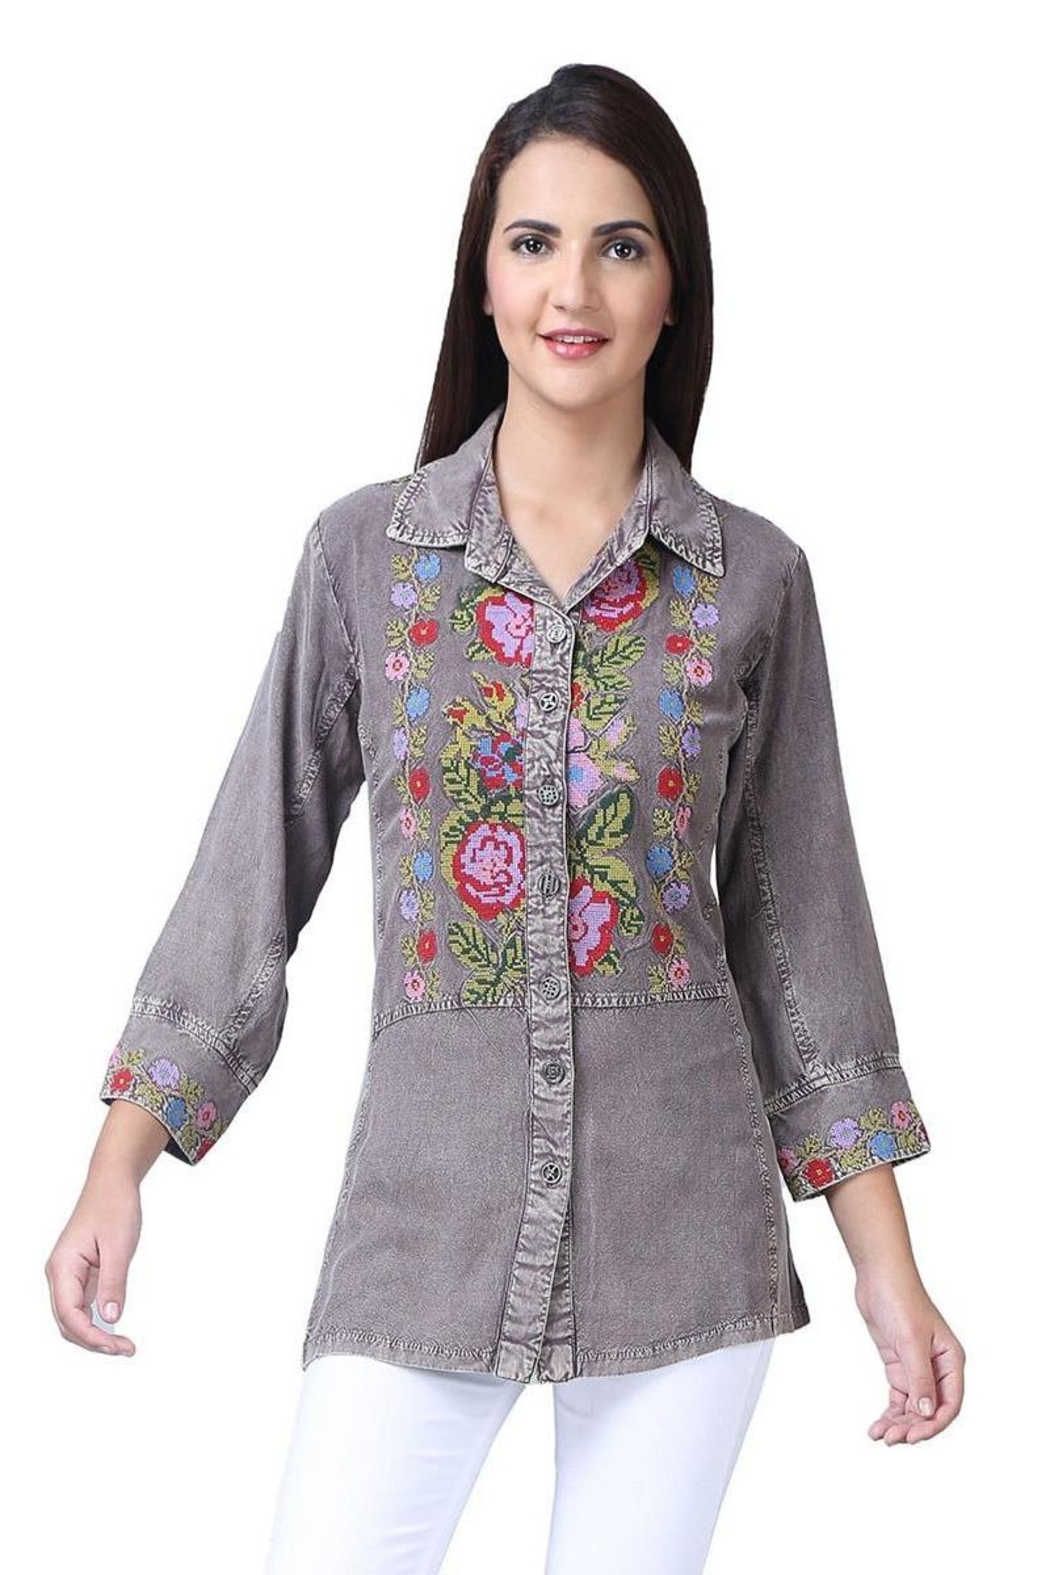 Parsley & Sage Embroidered Button-Up Shirt - Main Image